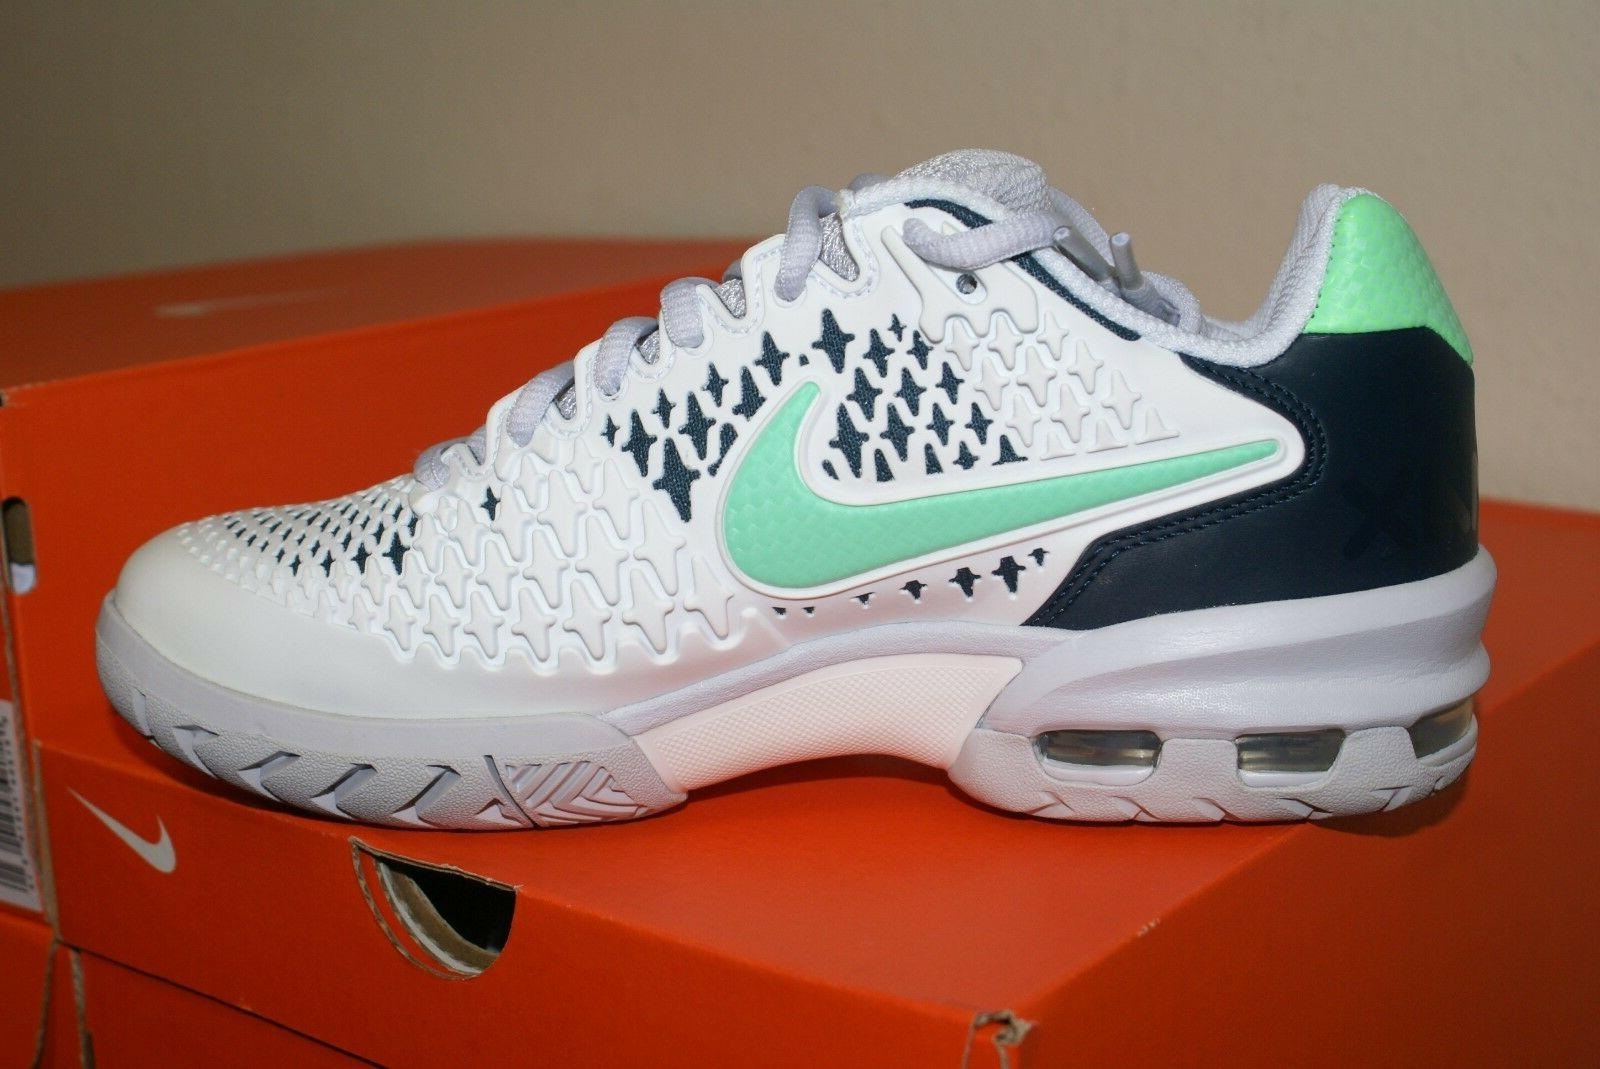 Nike Women's Air Max Cage Tennis Shoe Style #554874134